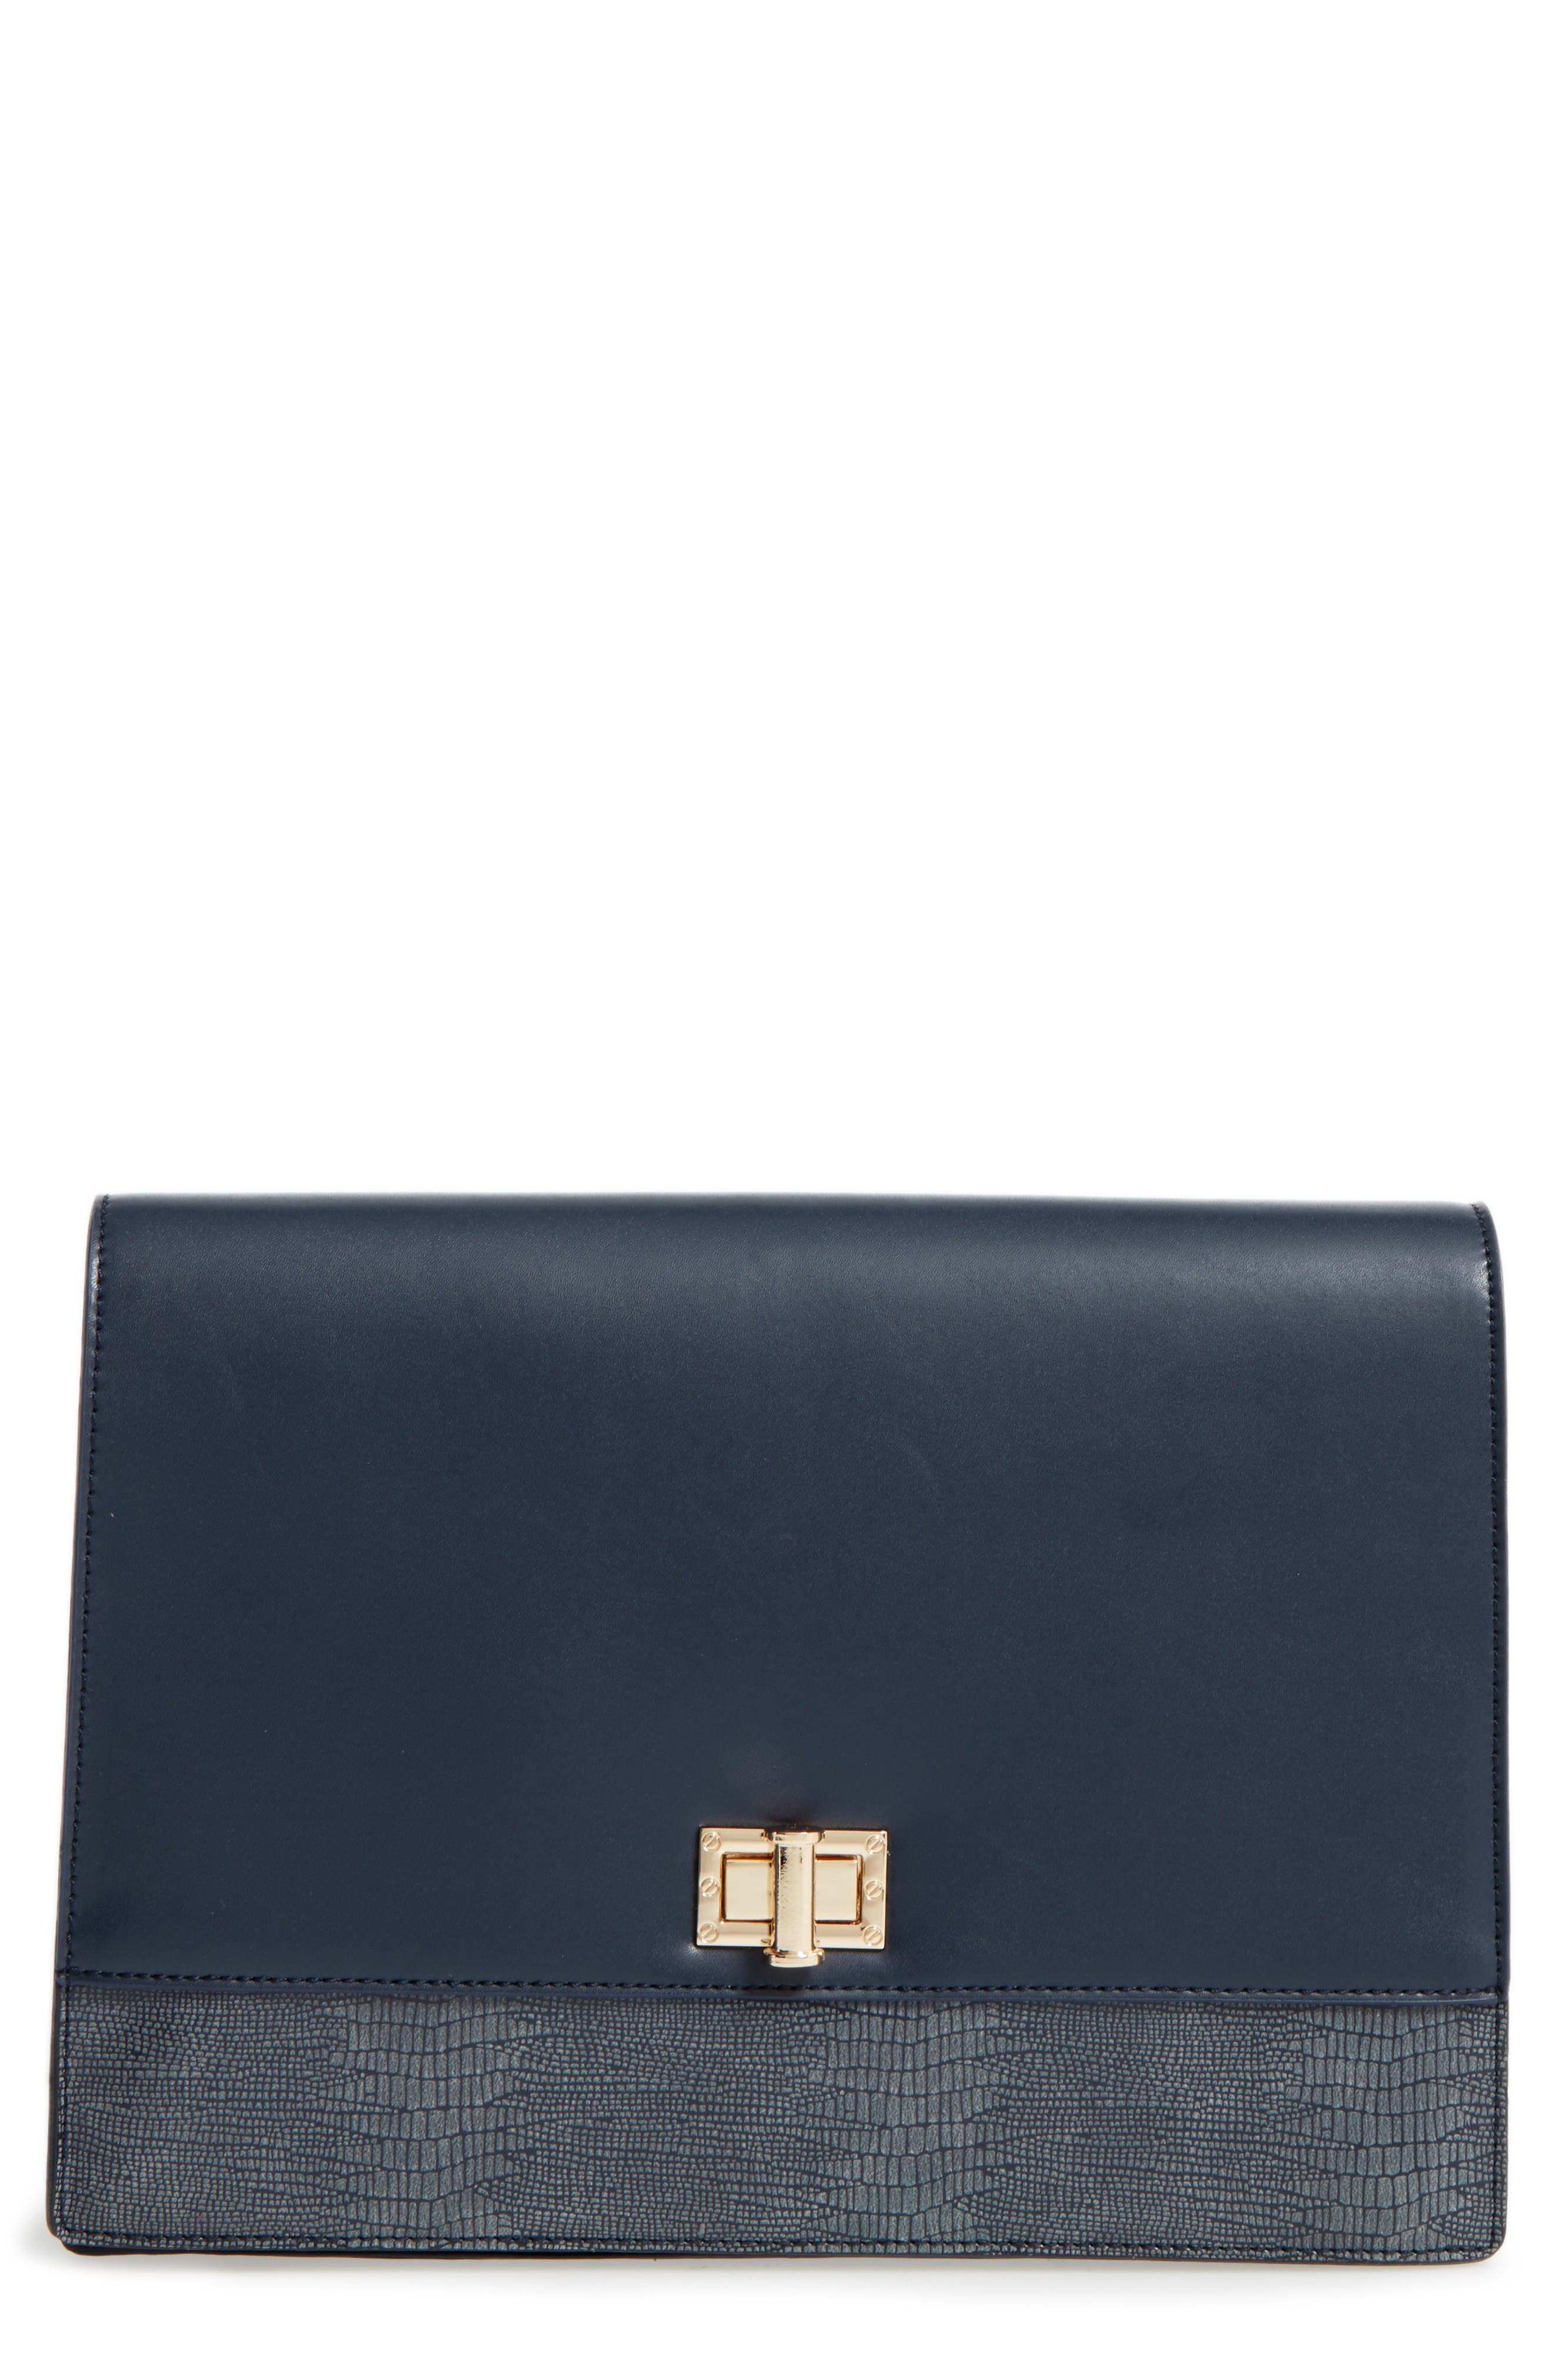 Kaitlyn Faux Leather Clutch,                             Main thumbnail 1, color,                             Navy